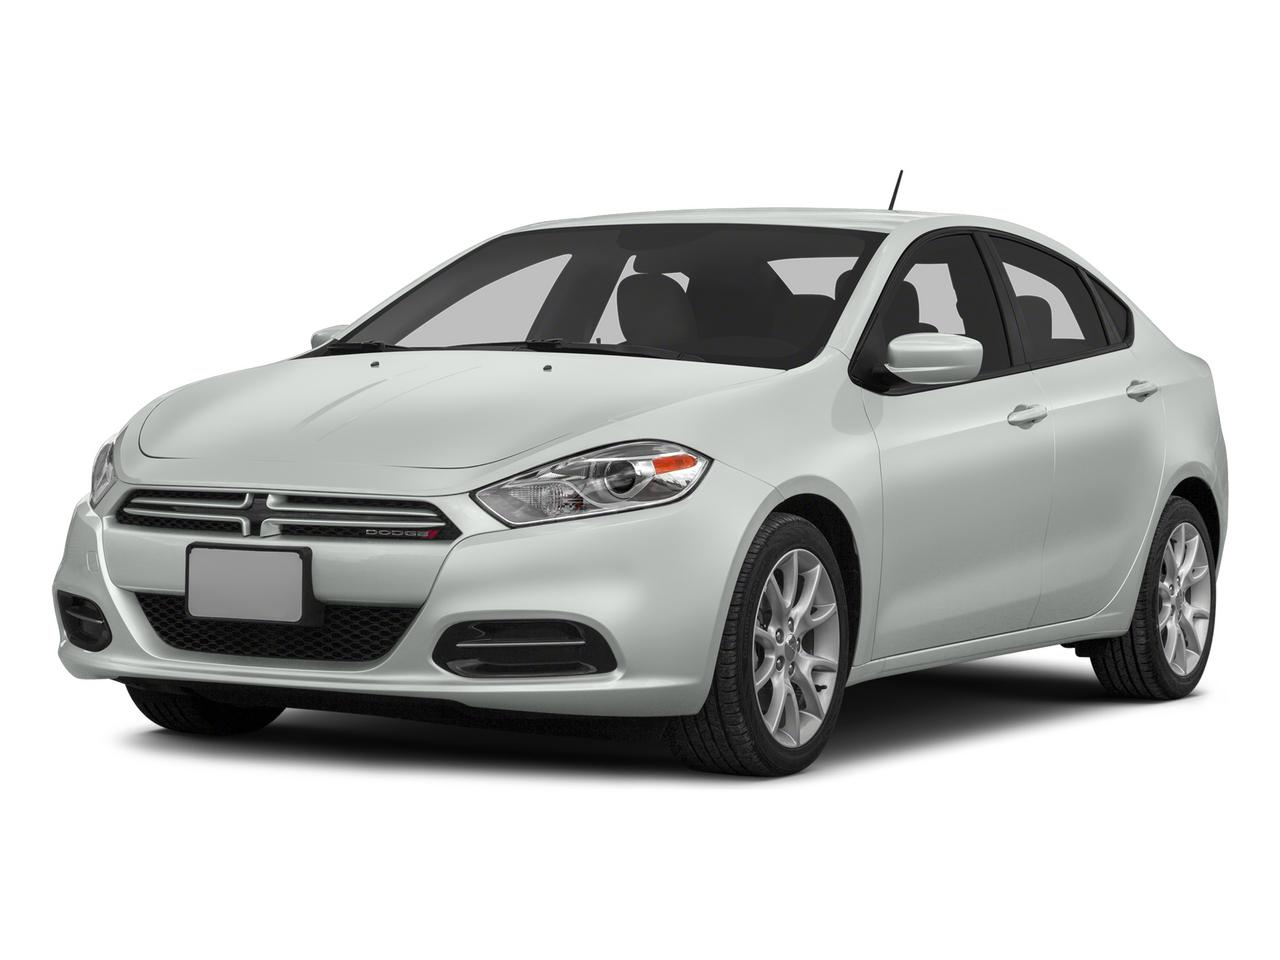 2015 Dodge Dart Vehicle Photo in Killeen, TX 76541